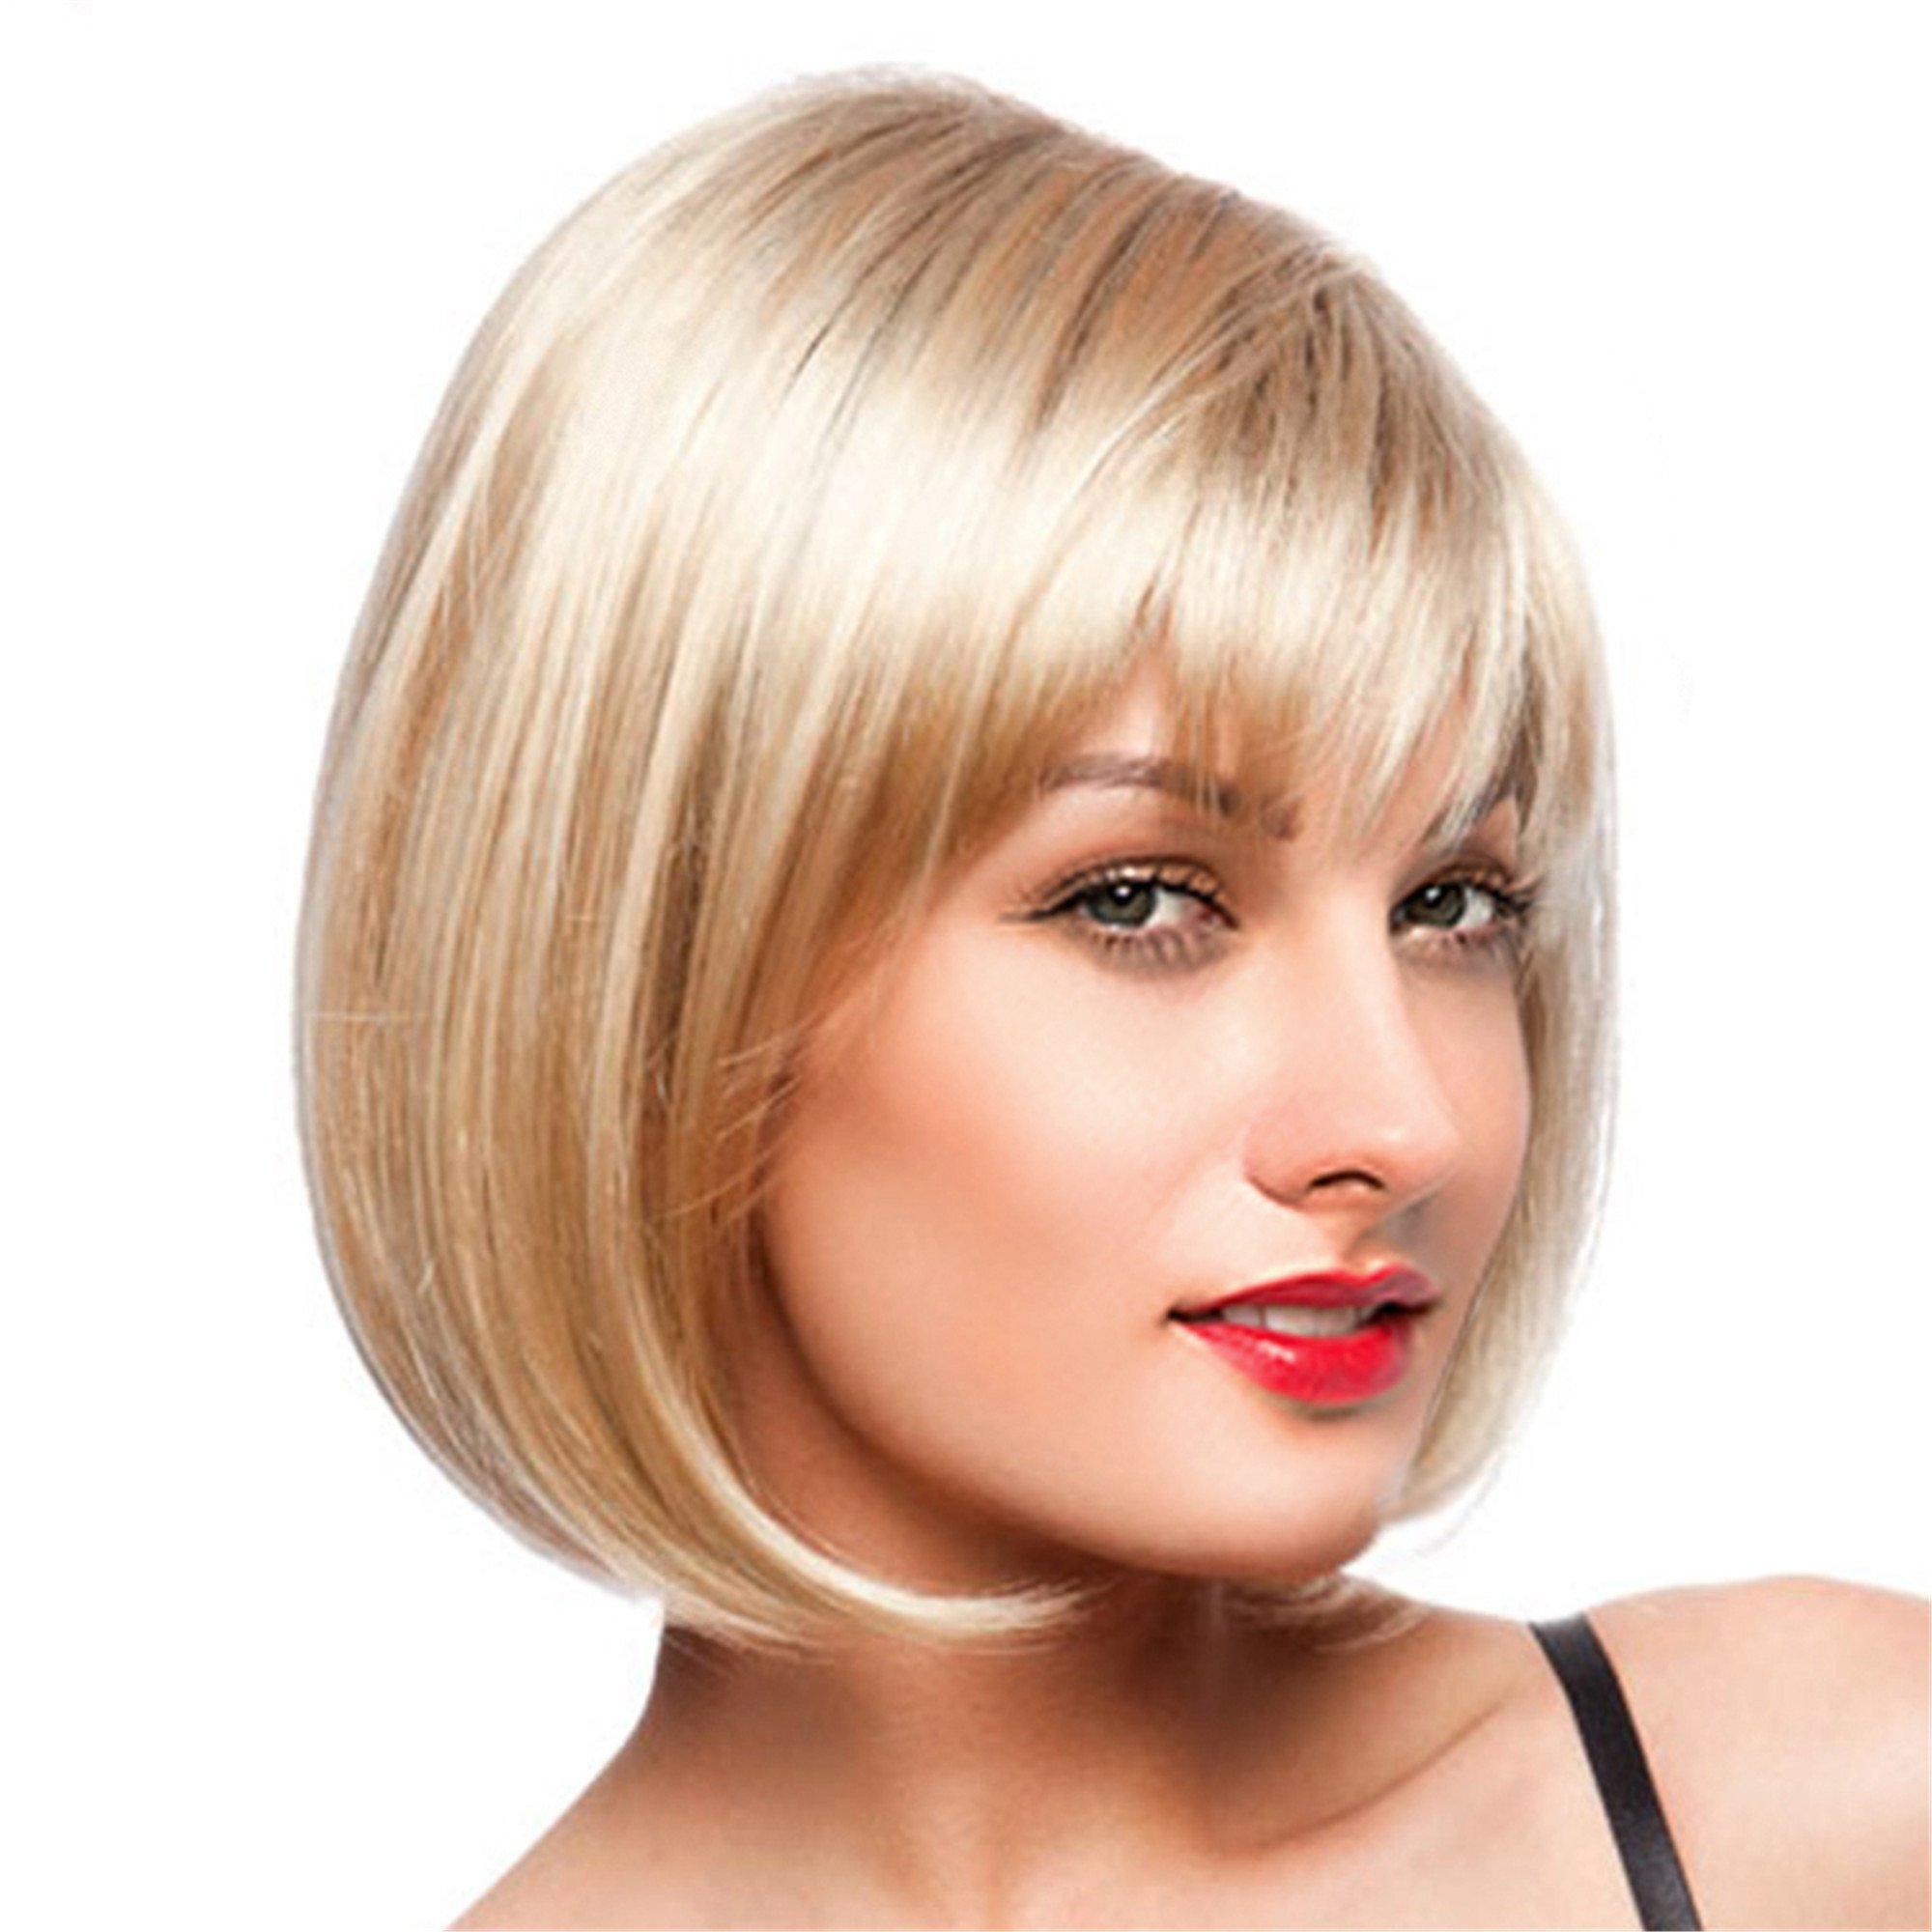 Mufly Bob Style Virgin Brazilian Human Hair Wigs Blonde Color Short Natural Straight Side Bangs Blend Capless Wigs for Lady Women Wedding& Daily Wear 10 inches